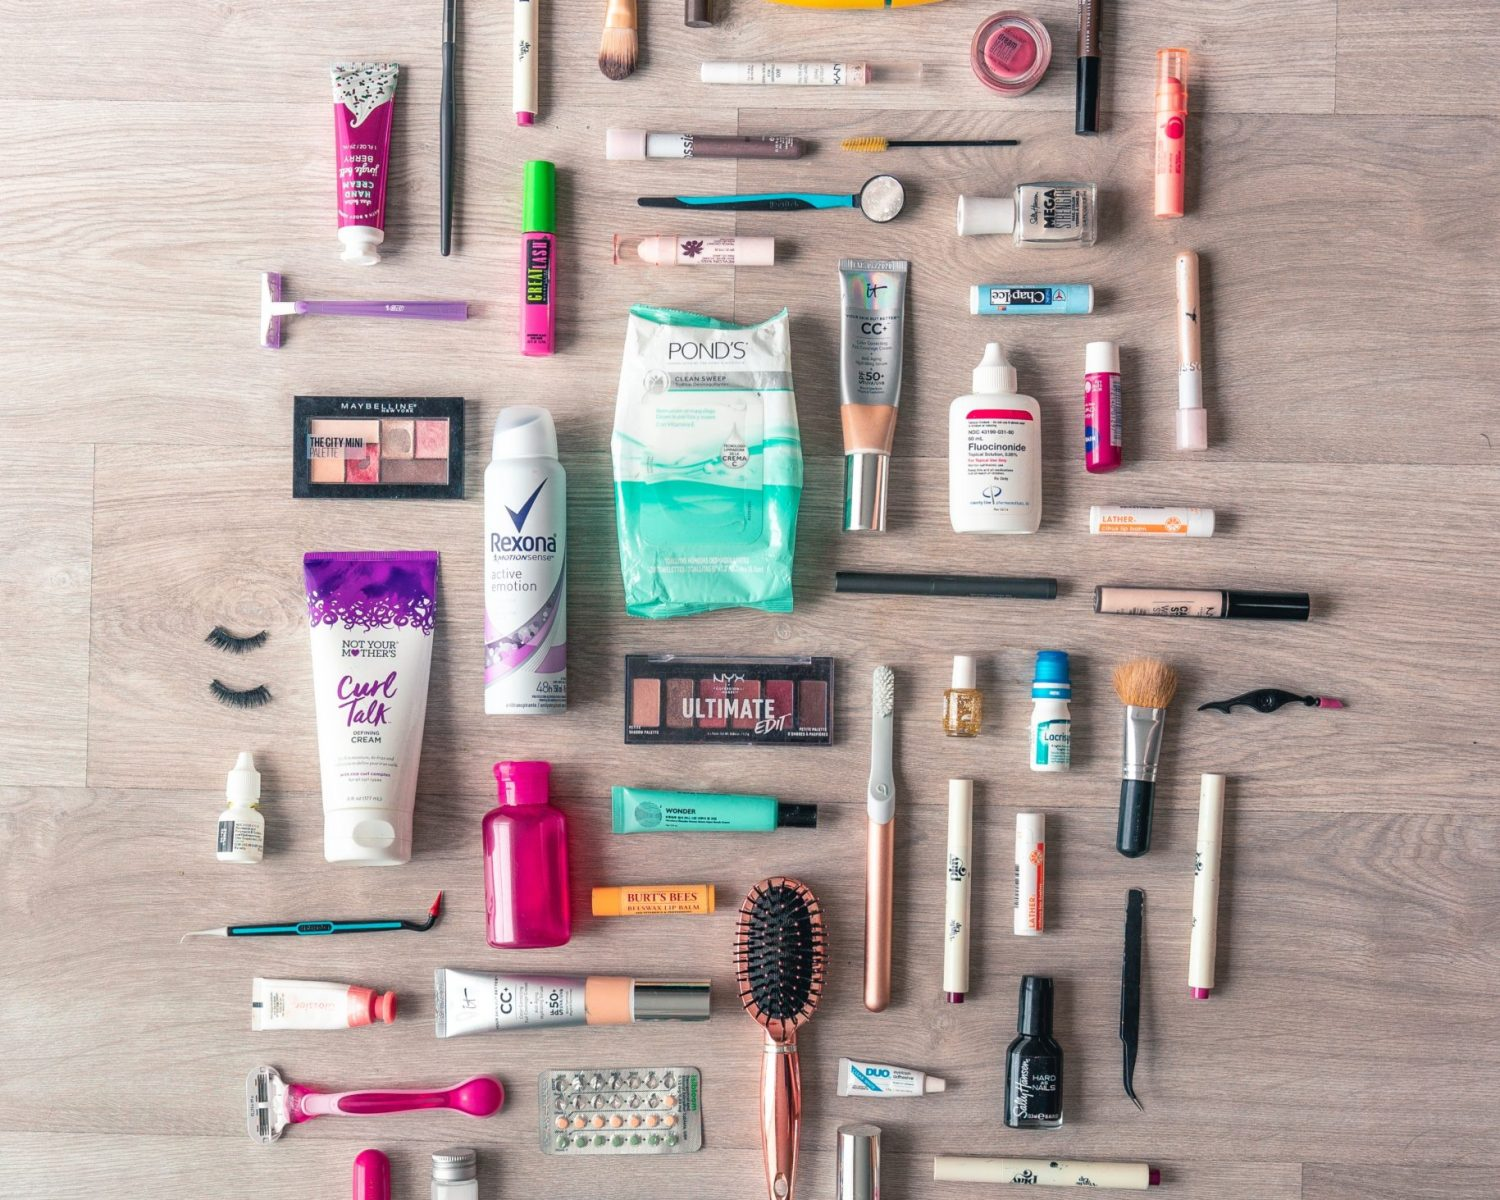 flat-lay-photography-of-beauty-products-3993398